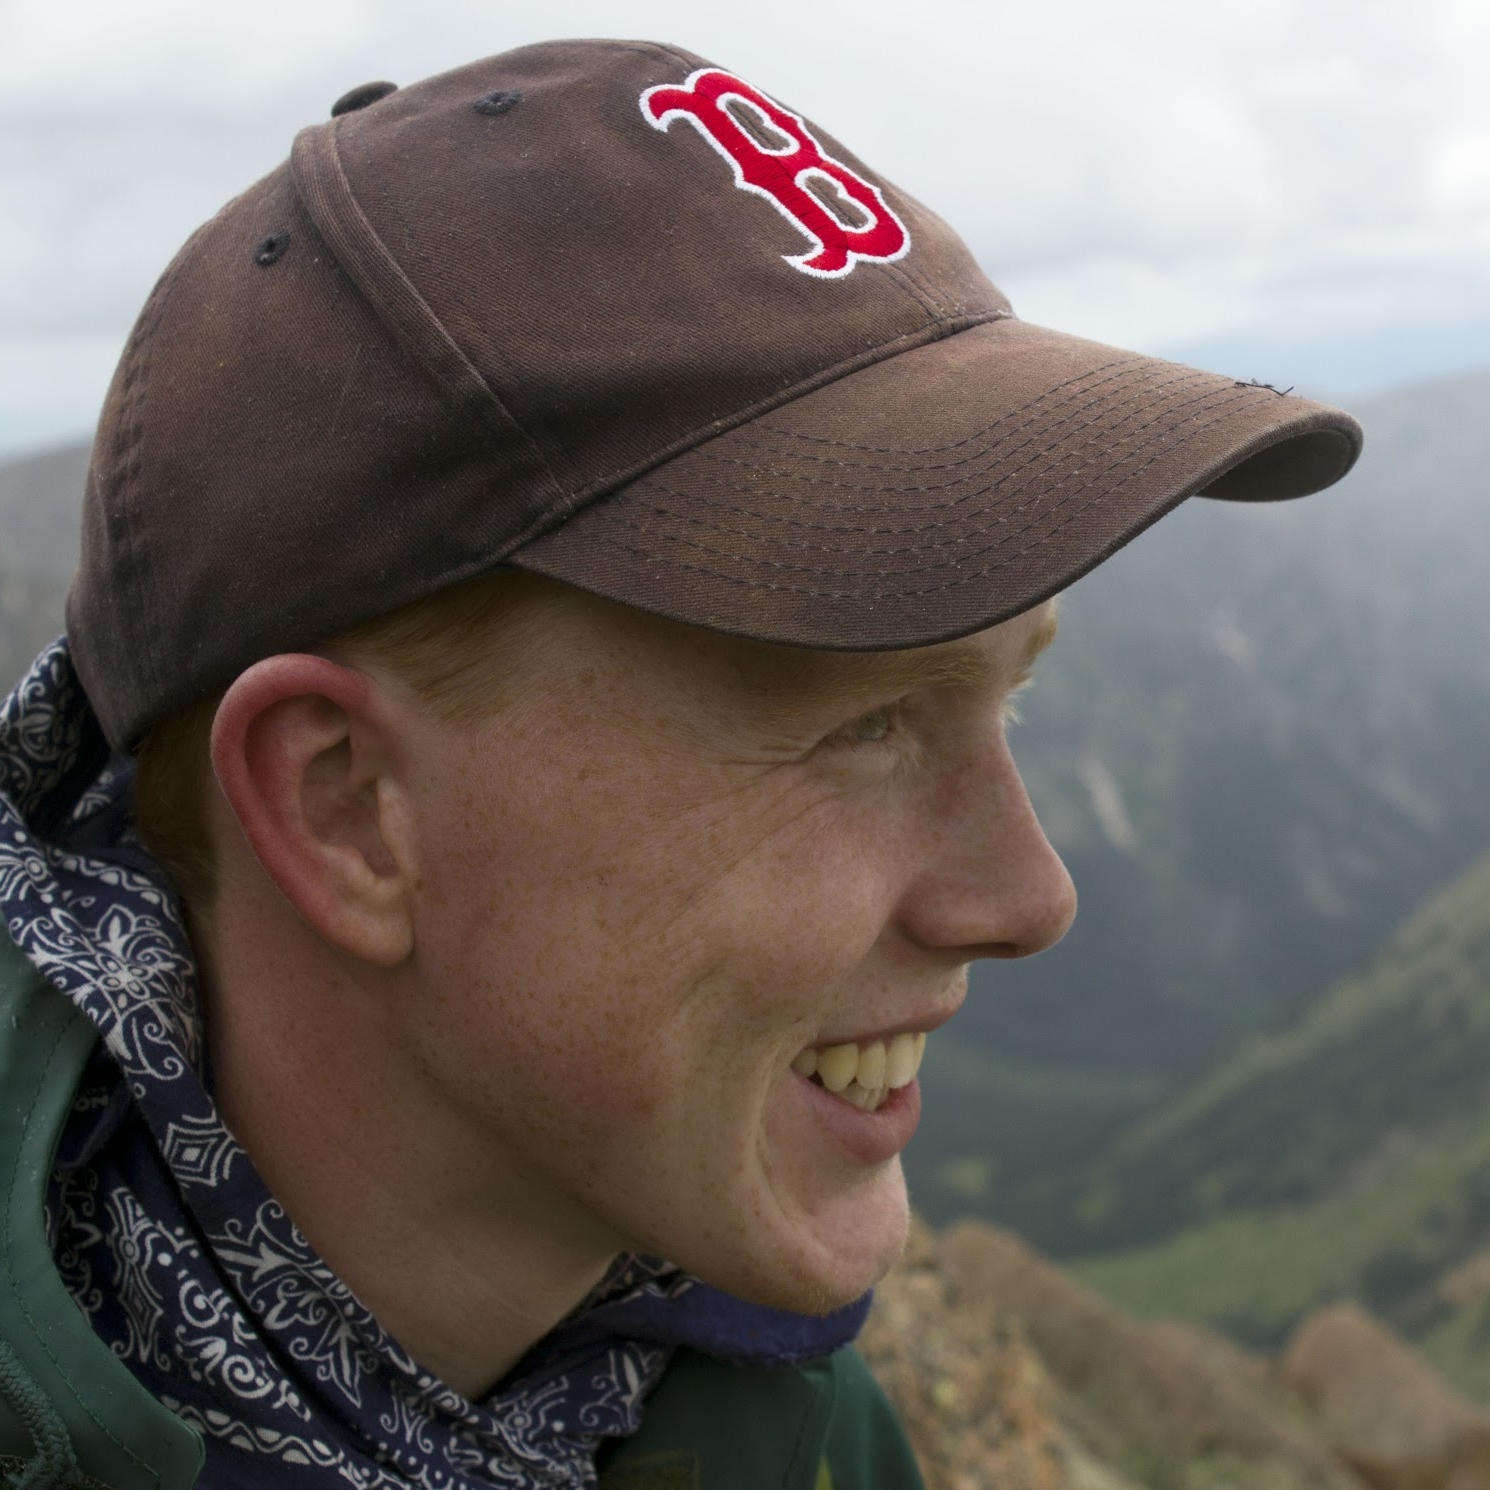 Will Atkinson '18 - I'm a Geosciences major interested in bridging disciplines to study renewable energy policy!